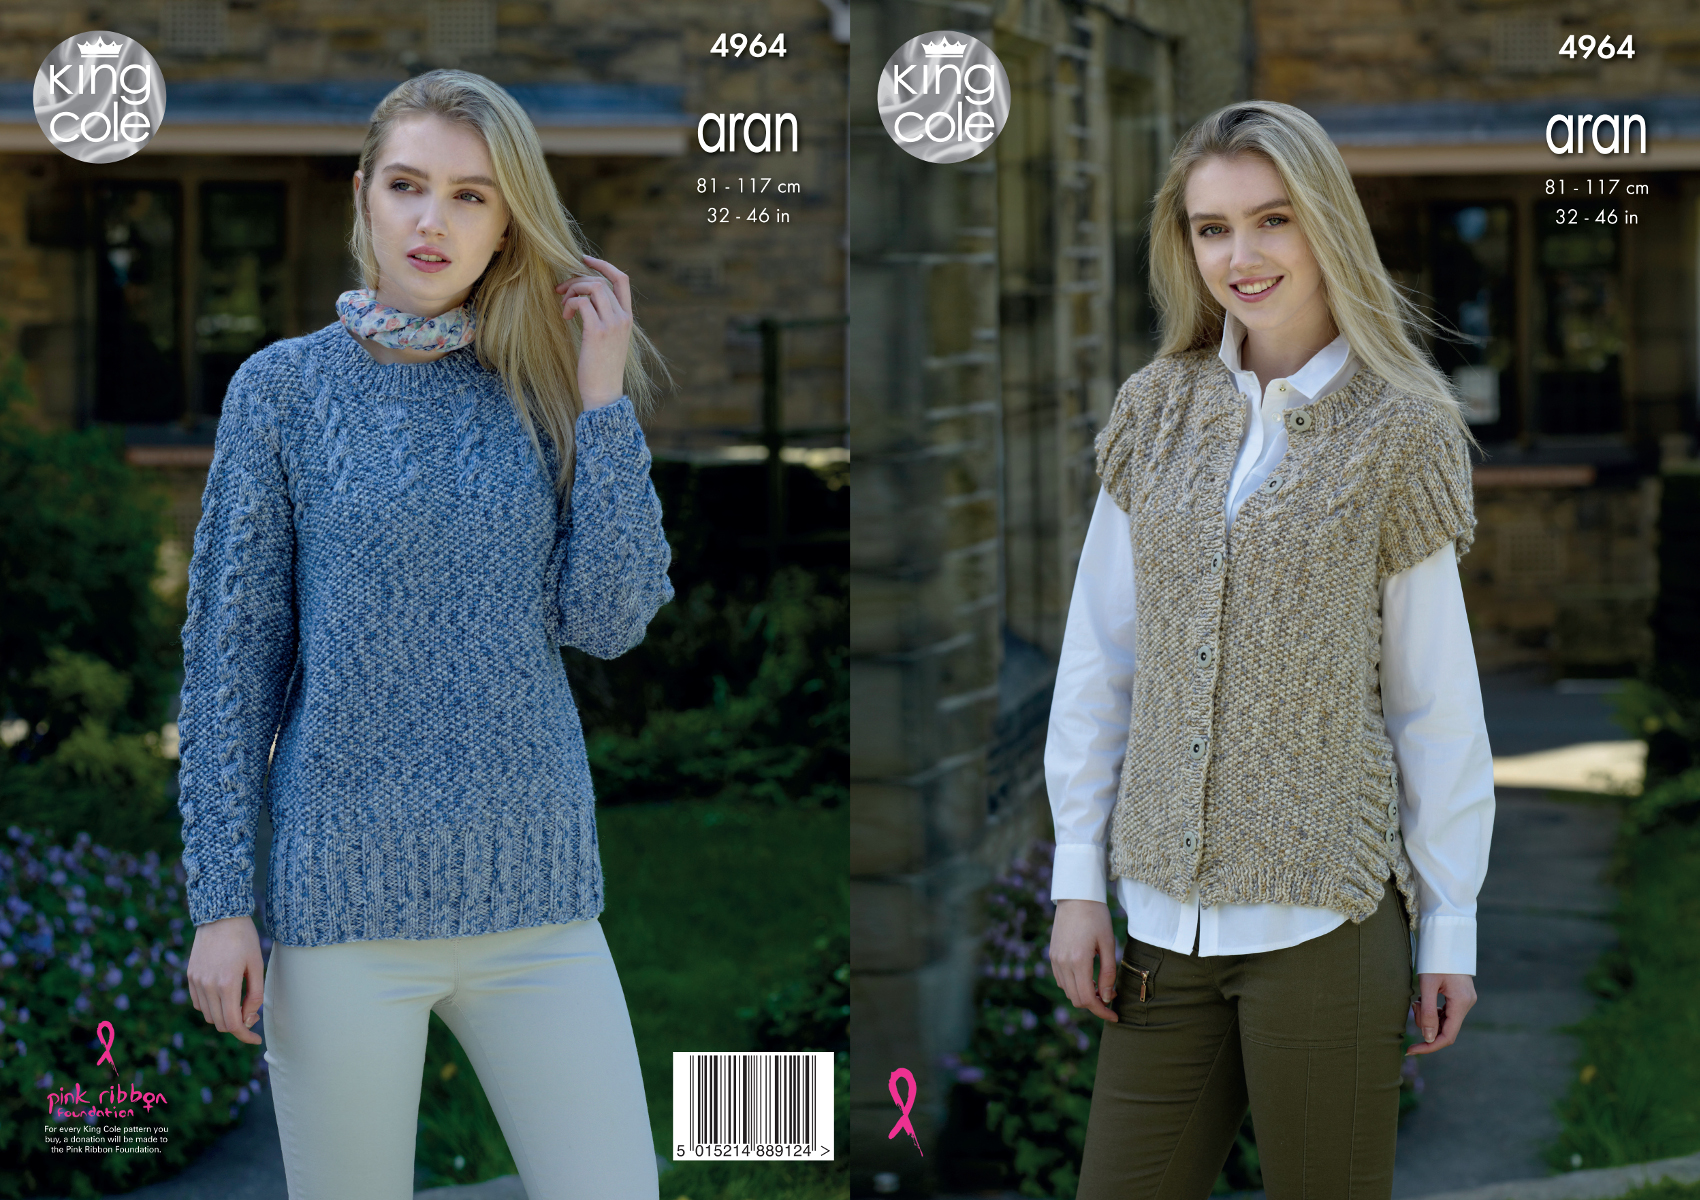 King Cole Ladies Aran Knitting Pattern Womens Cable Knit Sweater